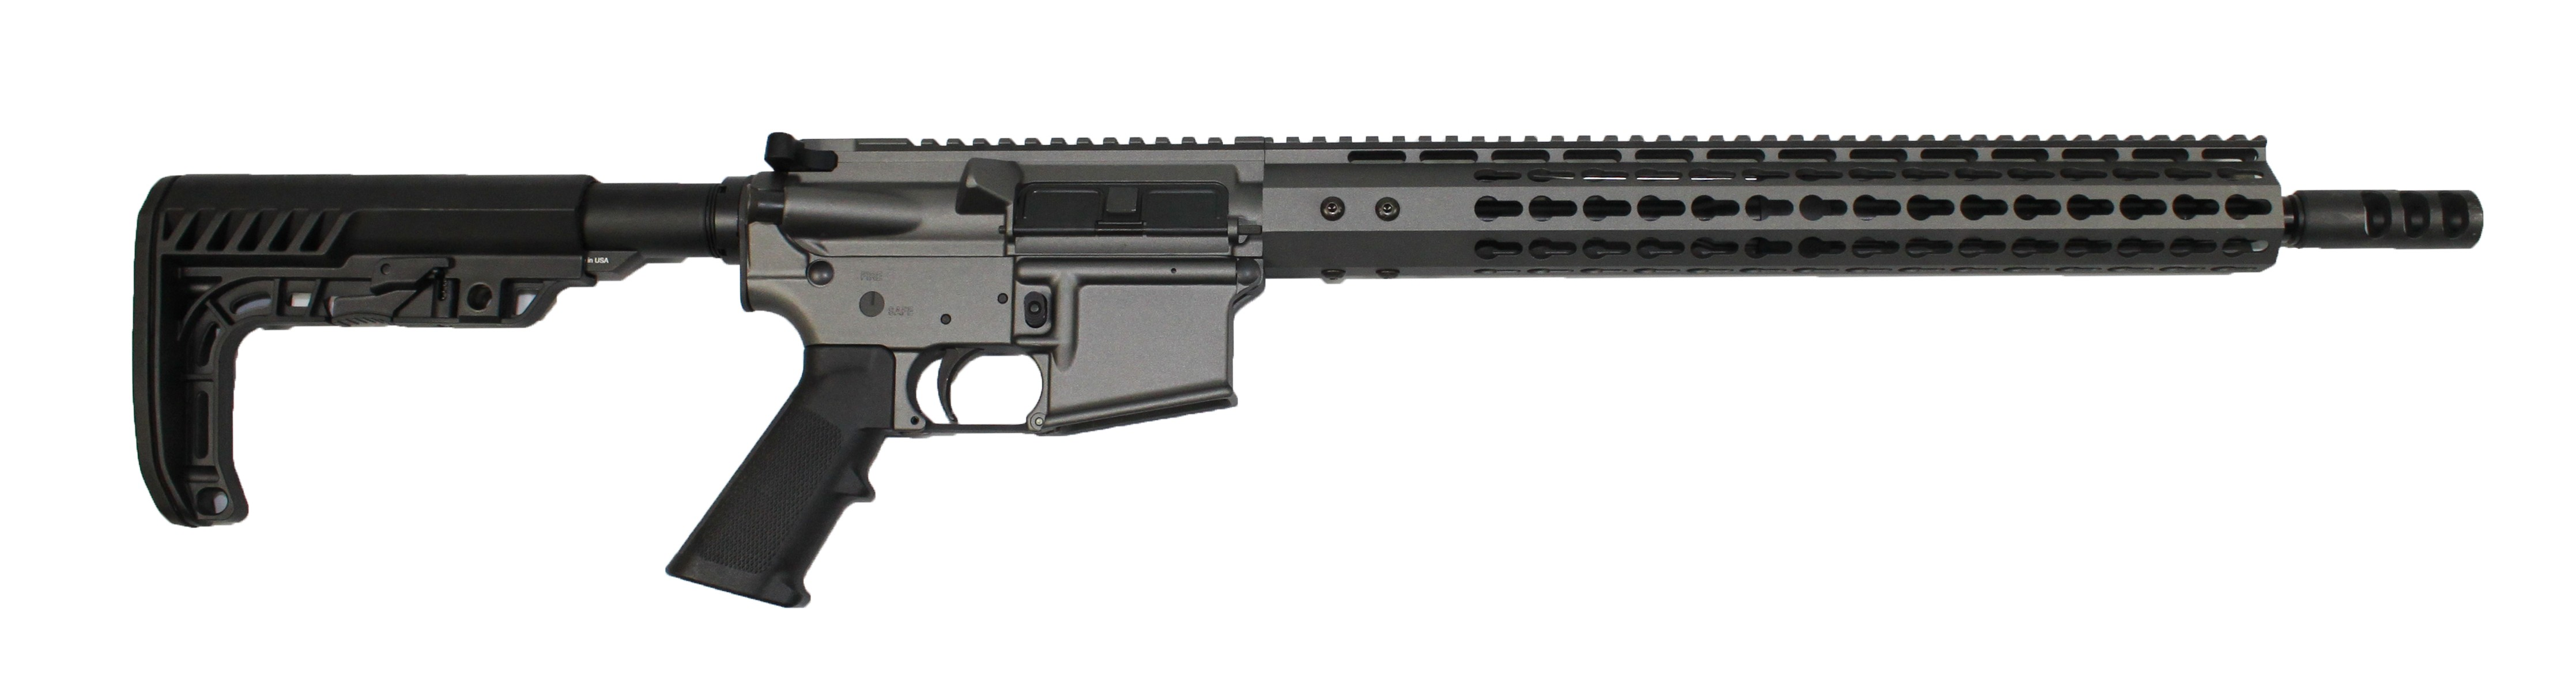 ar 15 complete rifle cbc industries limited edition tungsten rifle 223 5 56 mb05 2 flash hider minimalist buttstock